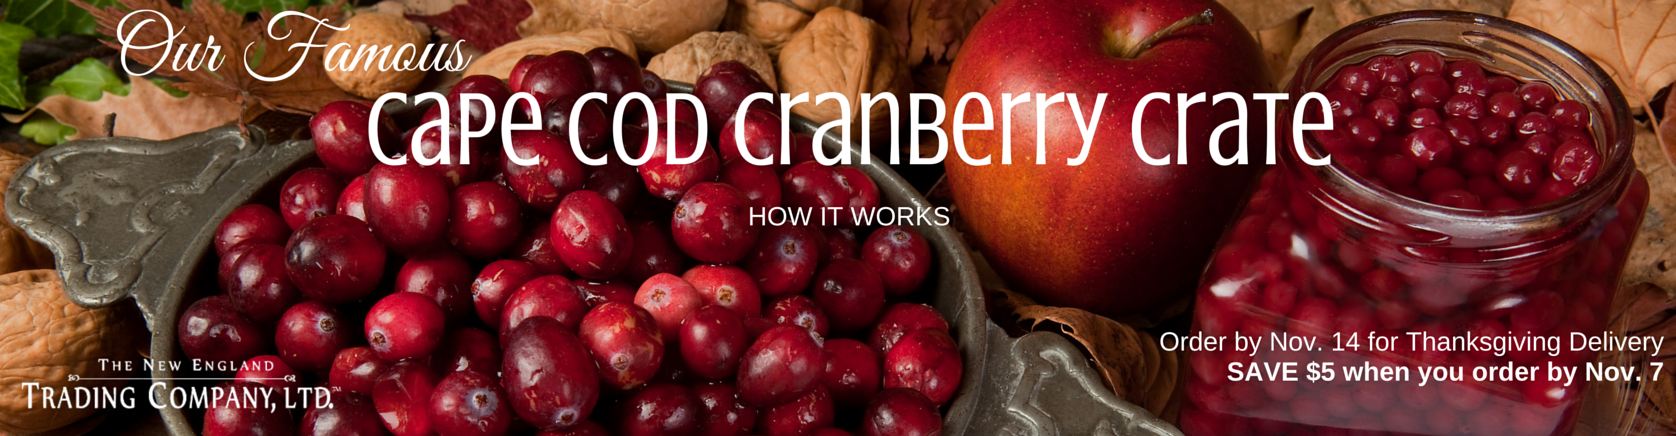 Our Famous Cape Cod Cranberry Crate - SAVE $5 when you order by Nov. 7